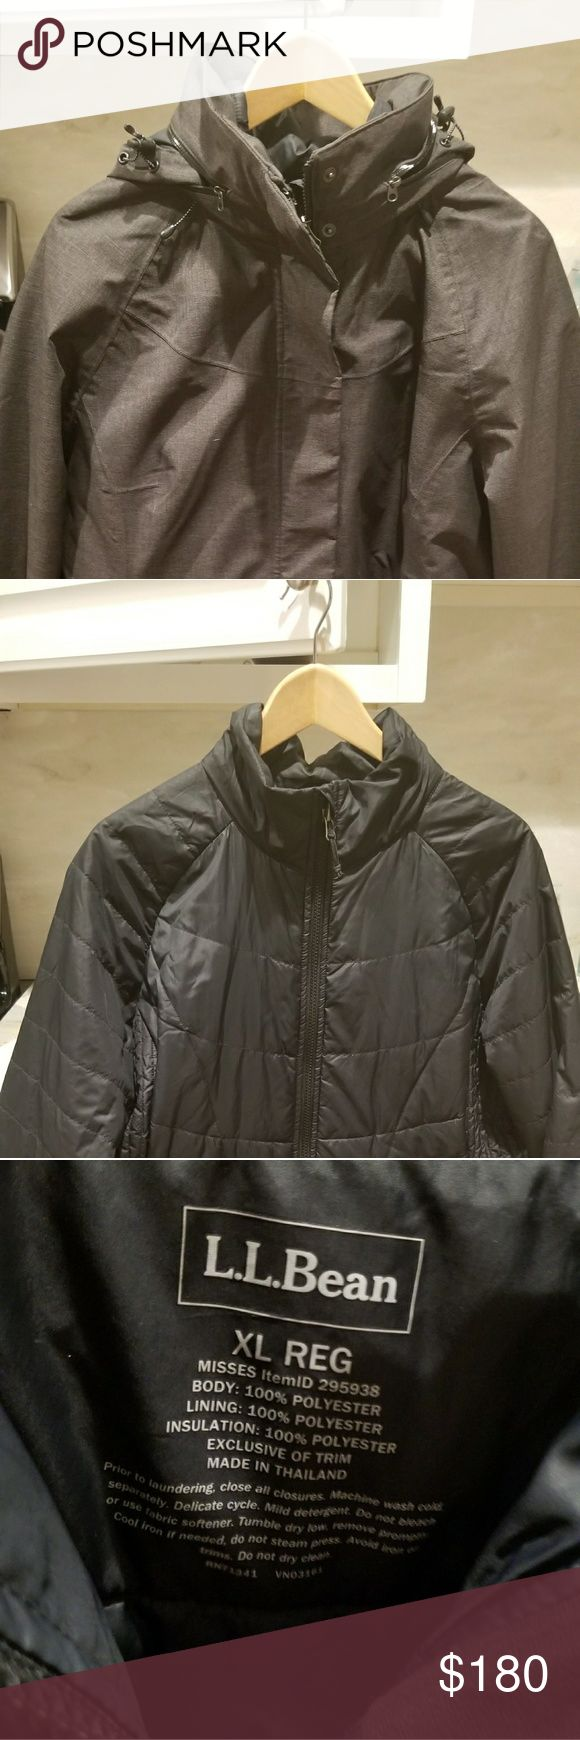 LL Bean Women's 3-in-1 Coat XL This coat is in PERFECT condition! No flaws or worn areas at all. Less than a year old and only worn about 4-5 times total and well-cared for.   An excellent, super warm coat. Inner and outer coat can be worn separately or combined with a zipper for extra warmth.   See official LL Bean description - original price is $279 https://www.llbean.com/llb/shop/88204?feat=504728-GN2&page=all-season-3-in-1-coat&csp=f  This coat is the Black / Black combo (though in…